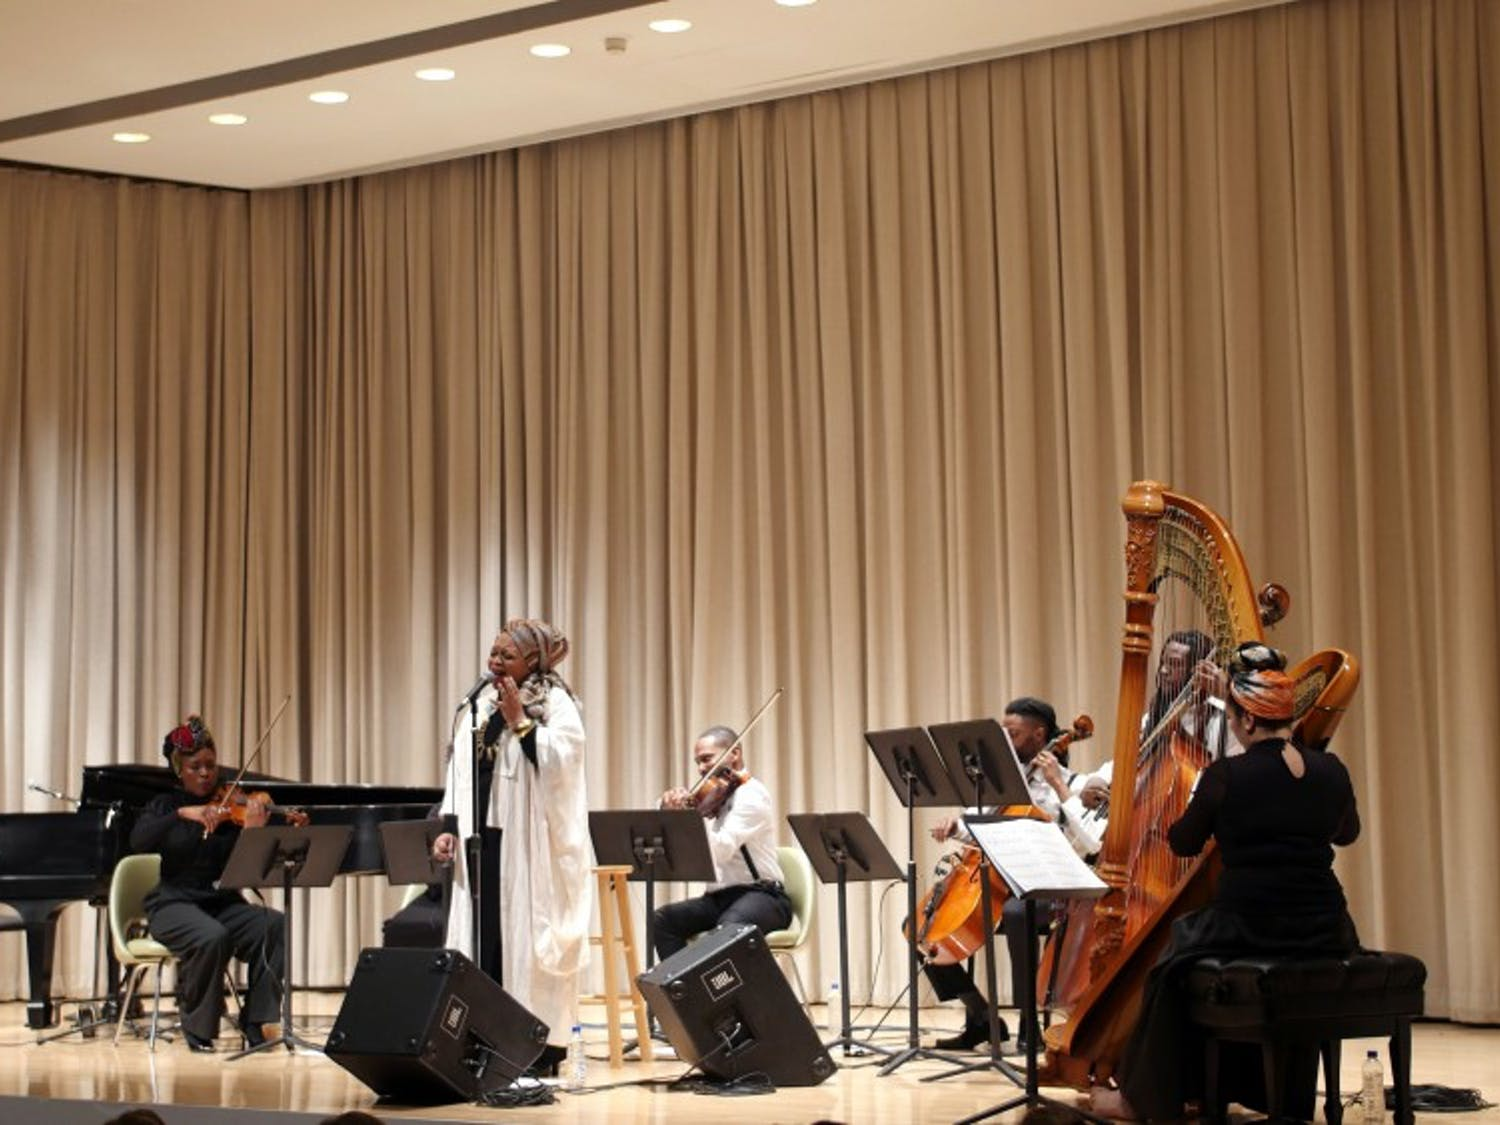 Nina Simone's music came to life at Albright-Knox on Thursday night thanks to Buffalo musicians Drea D'Nur and Roostock Republic's Dear Nina tribute.